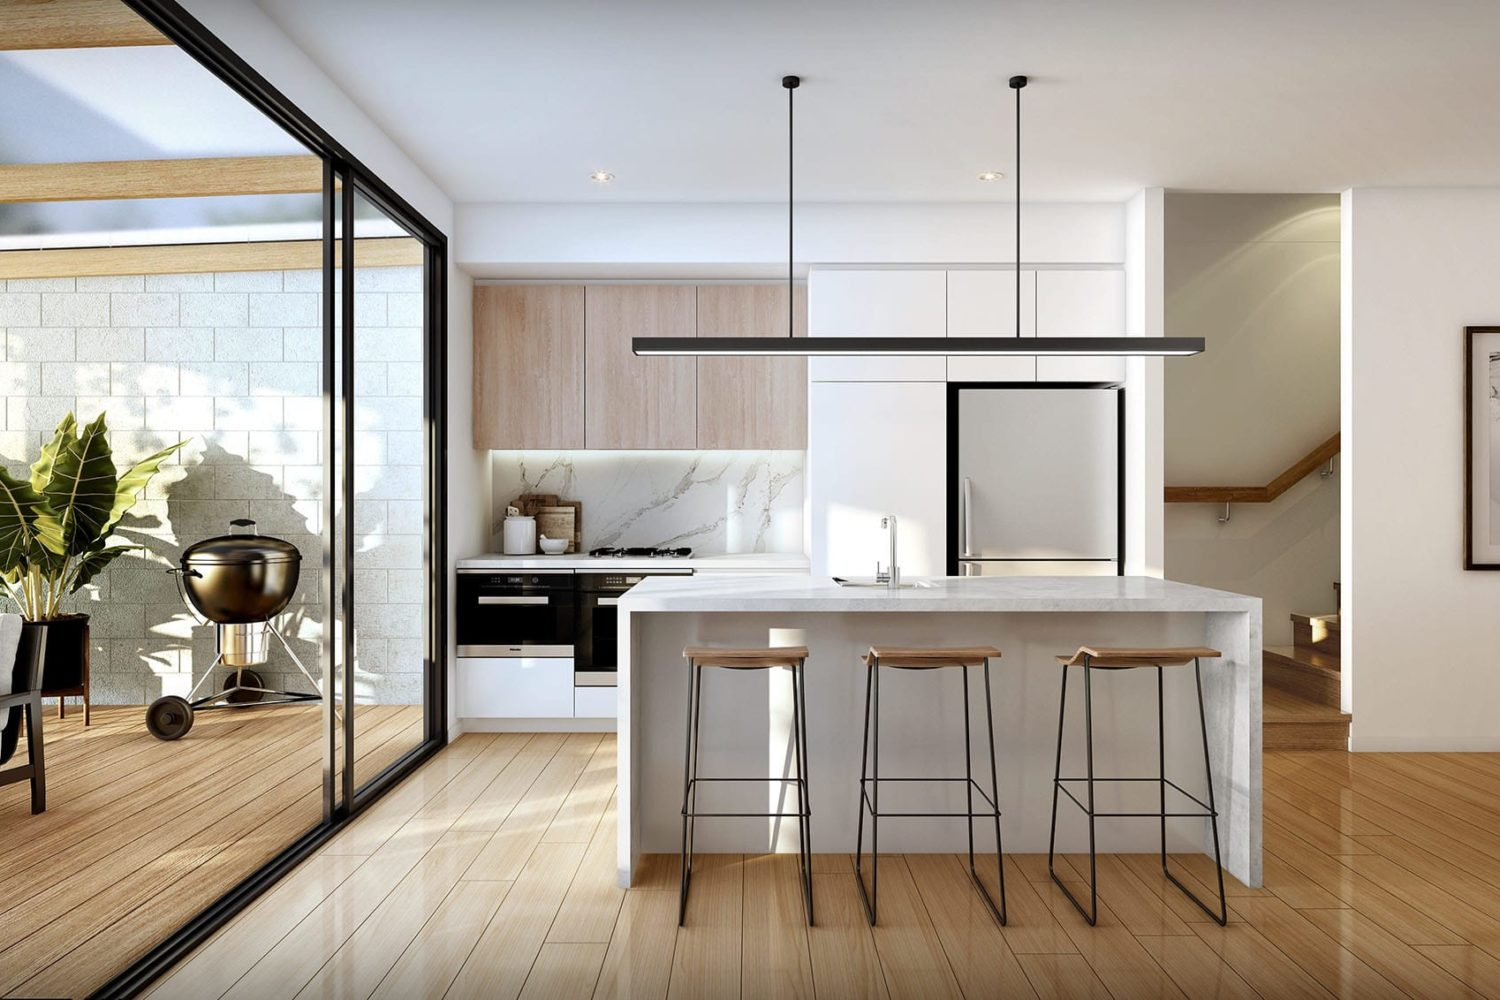 3-5704-A - Living+Kitchen+Dining Template-04 0118